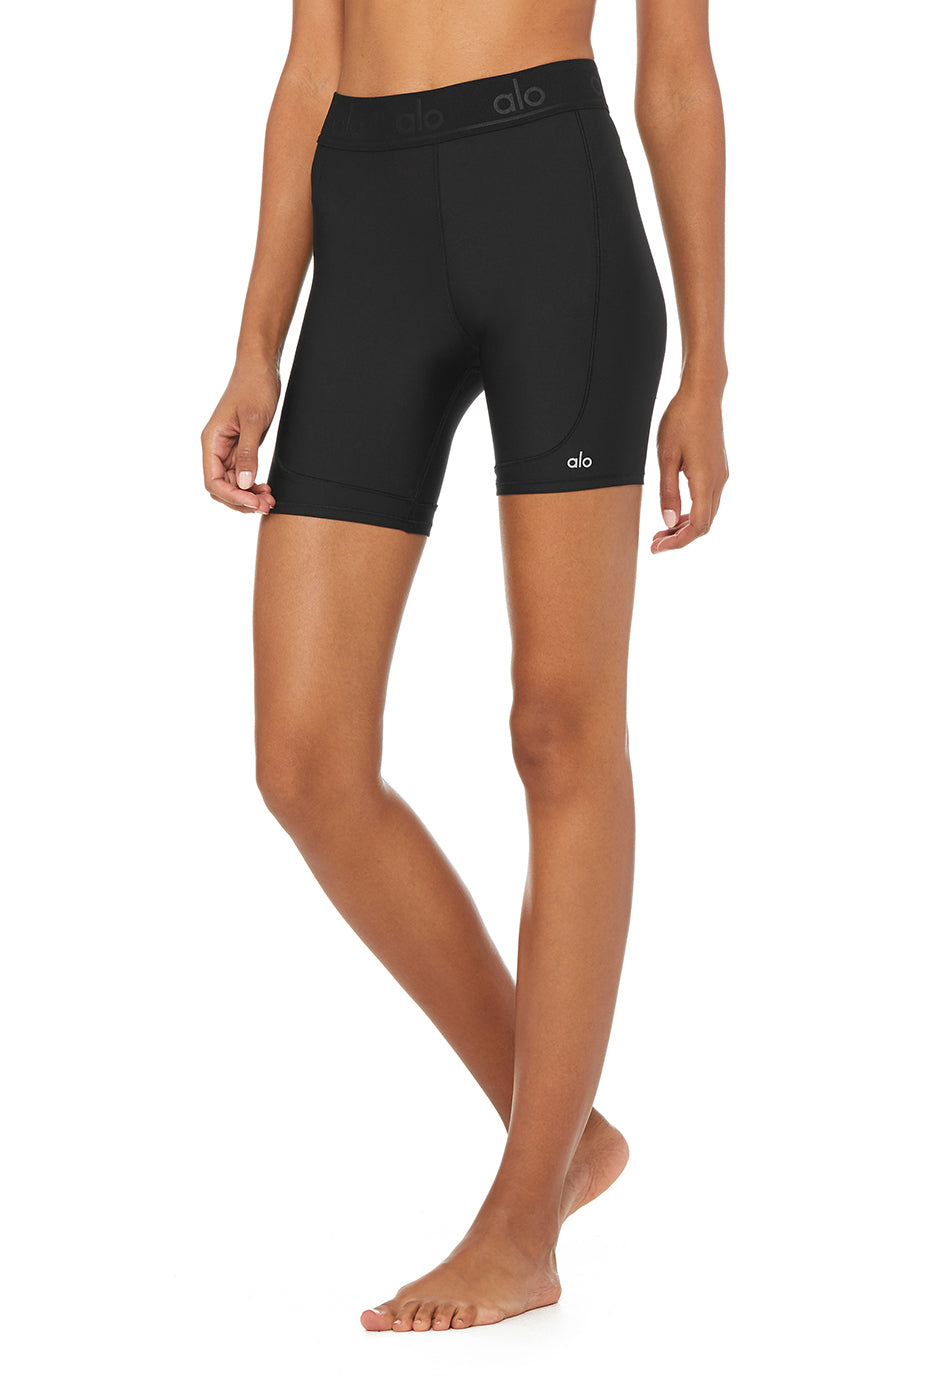 Limited-Edition Exclusive Rider Short